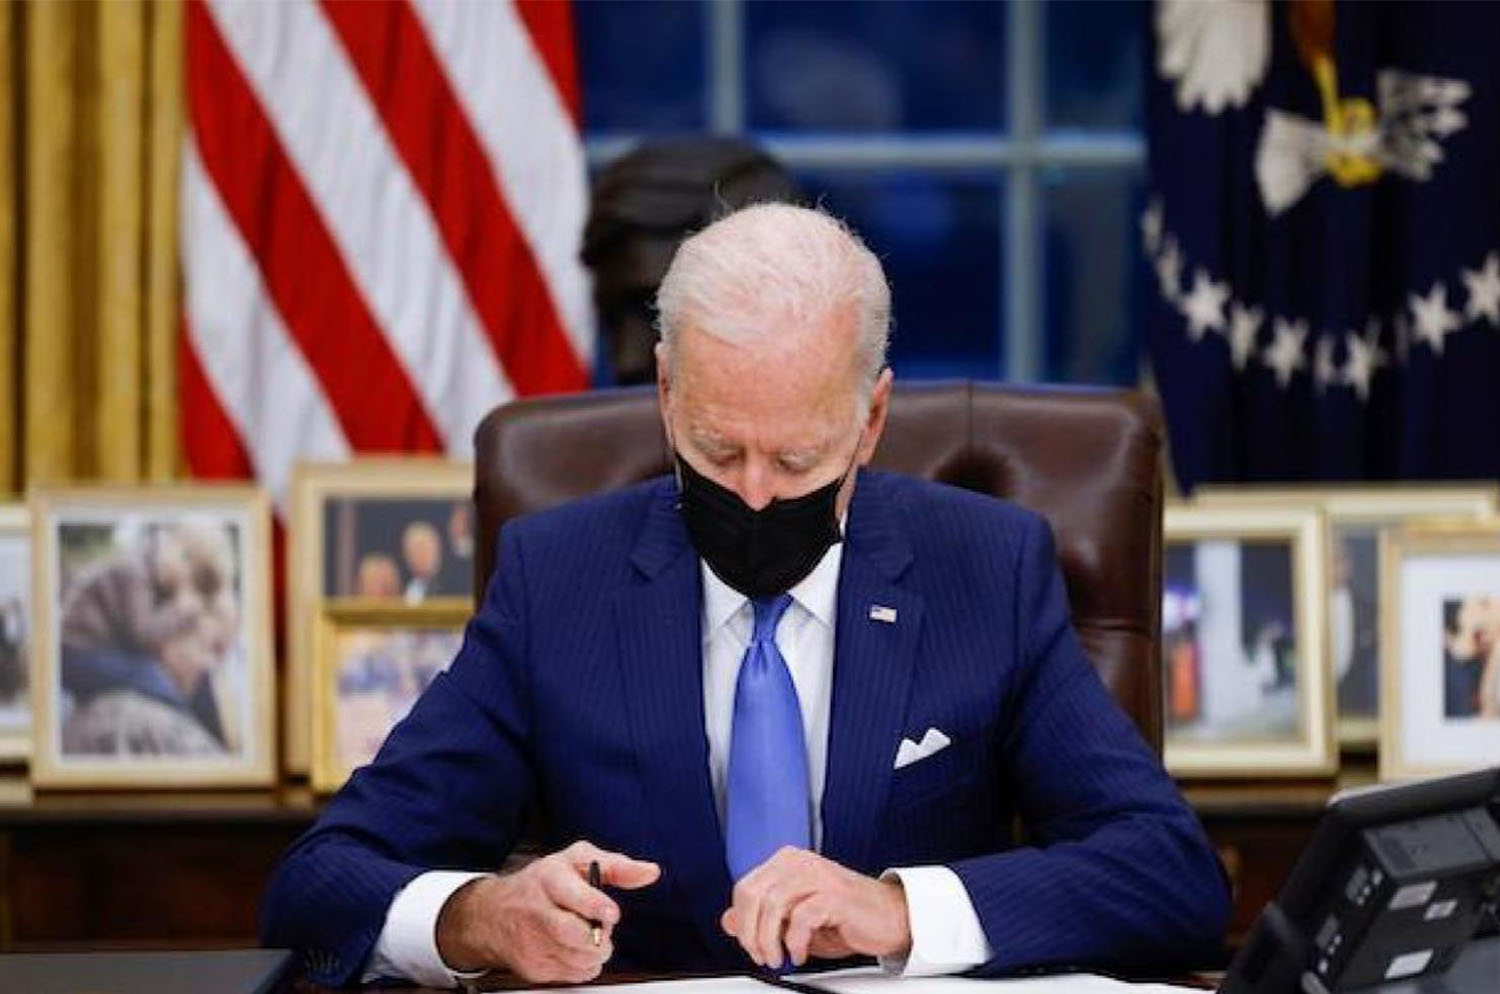 Green Card Ban Suit Paused Again After Biden Scraps Policy